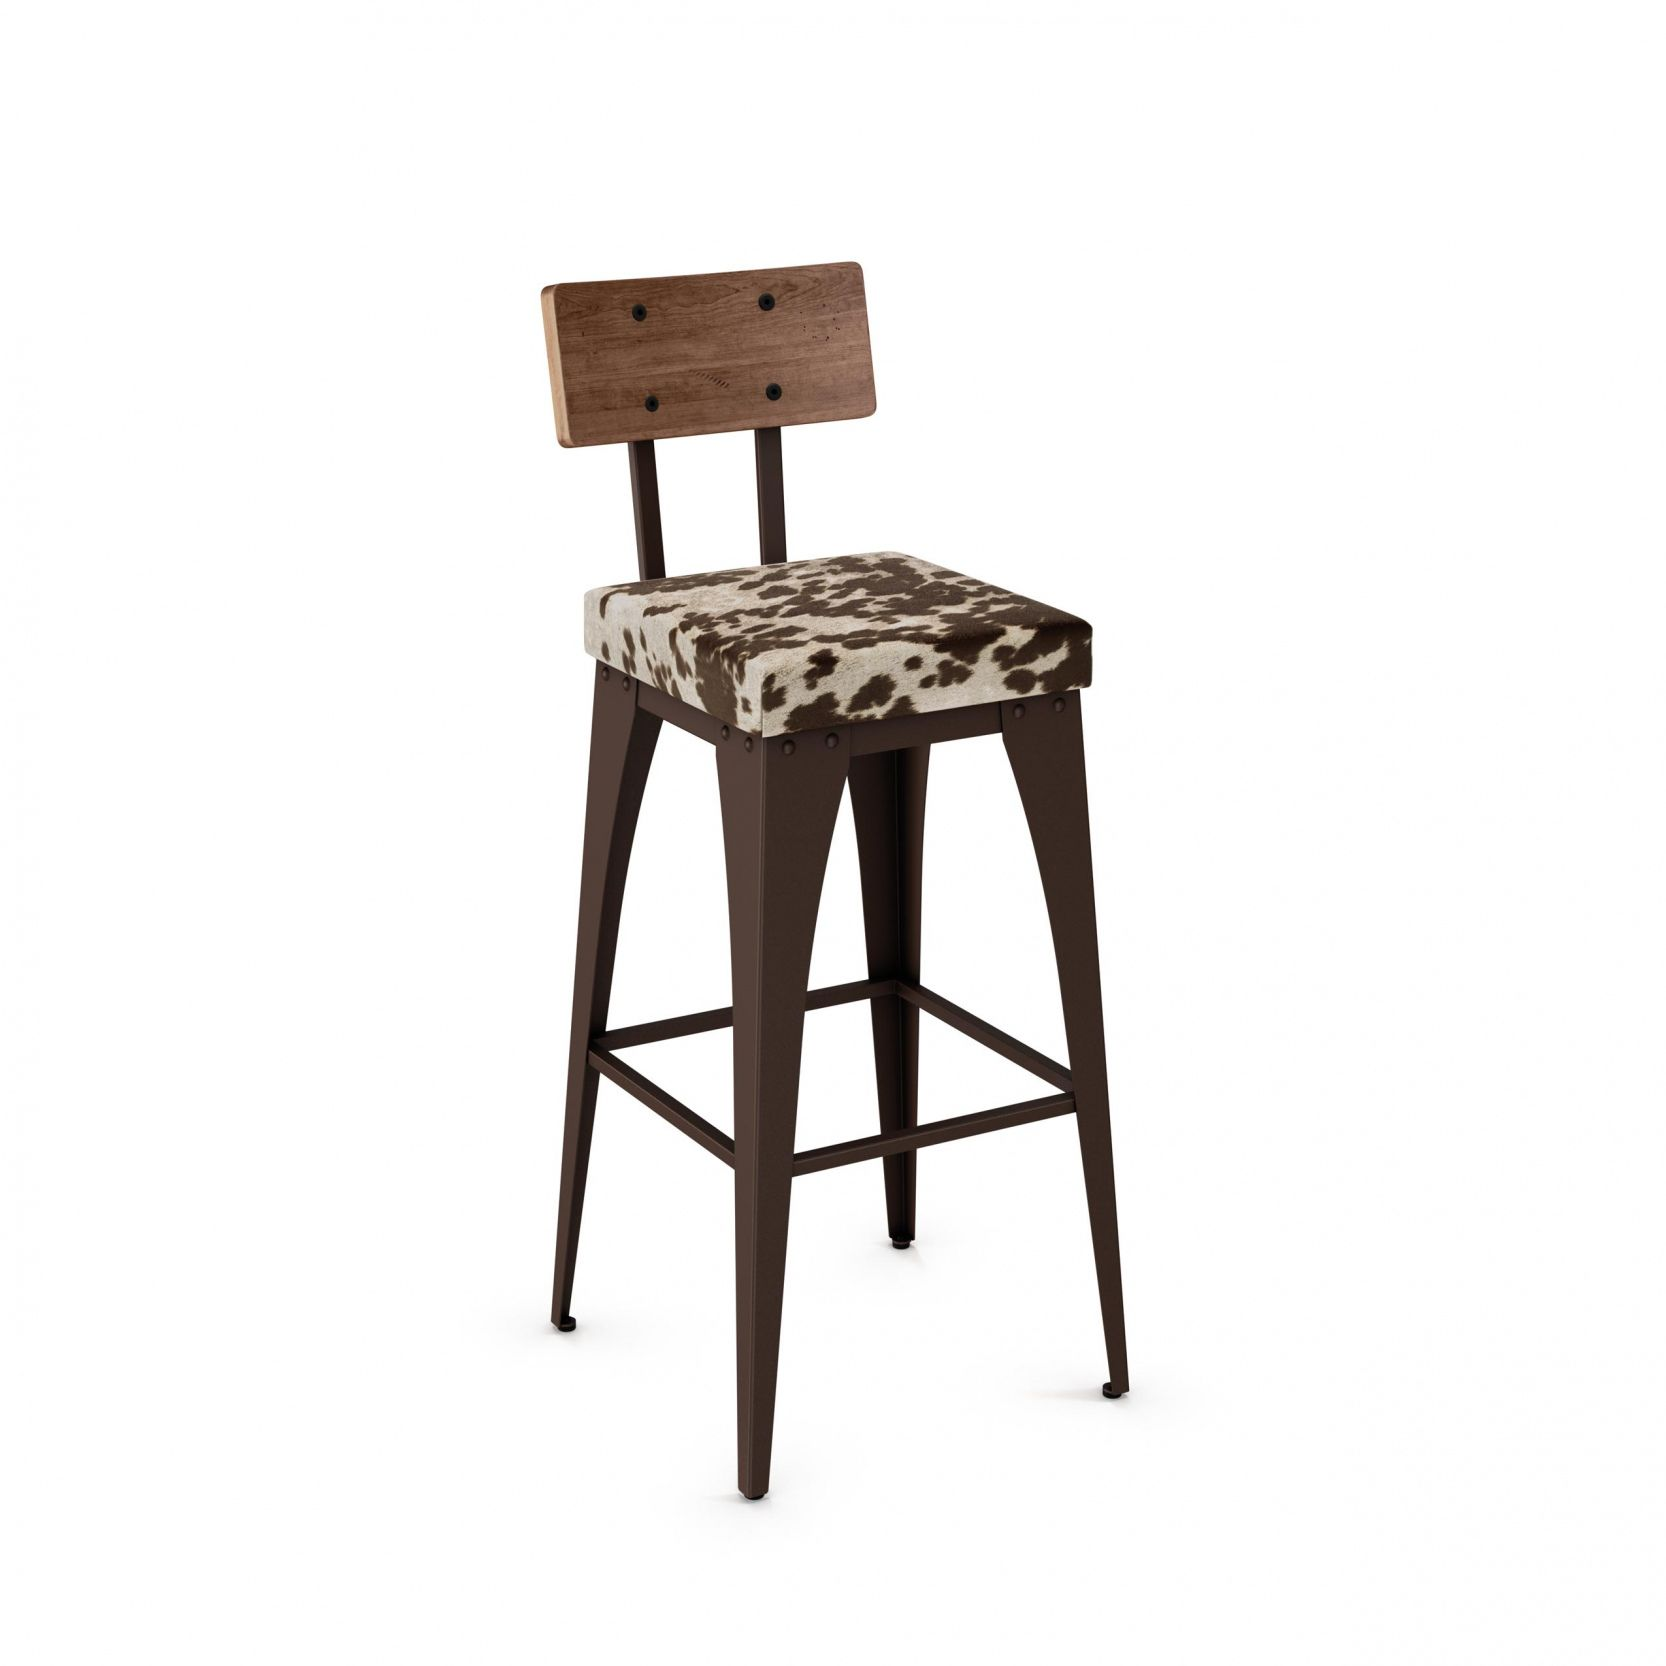 50 Cow Bar Stools Modern Used Furniture Check more at